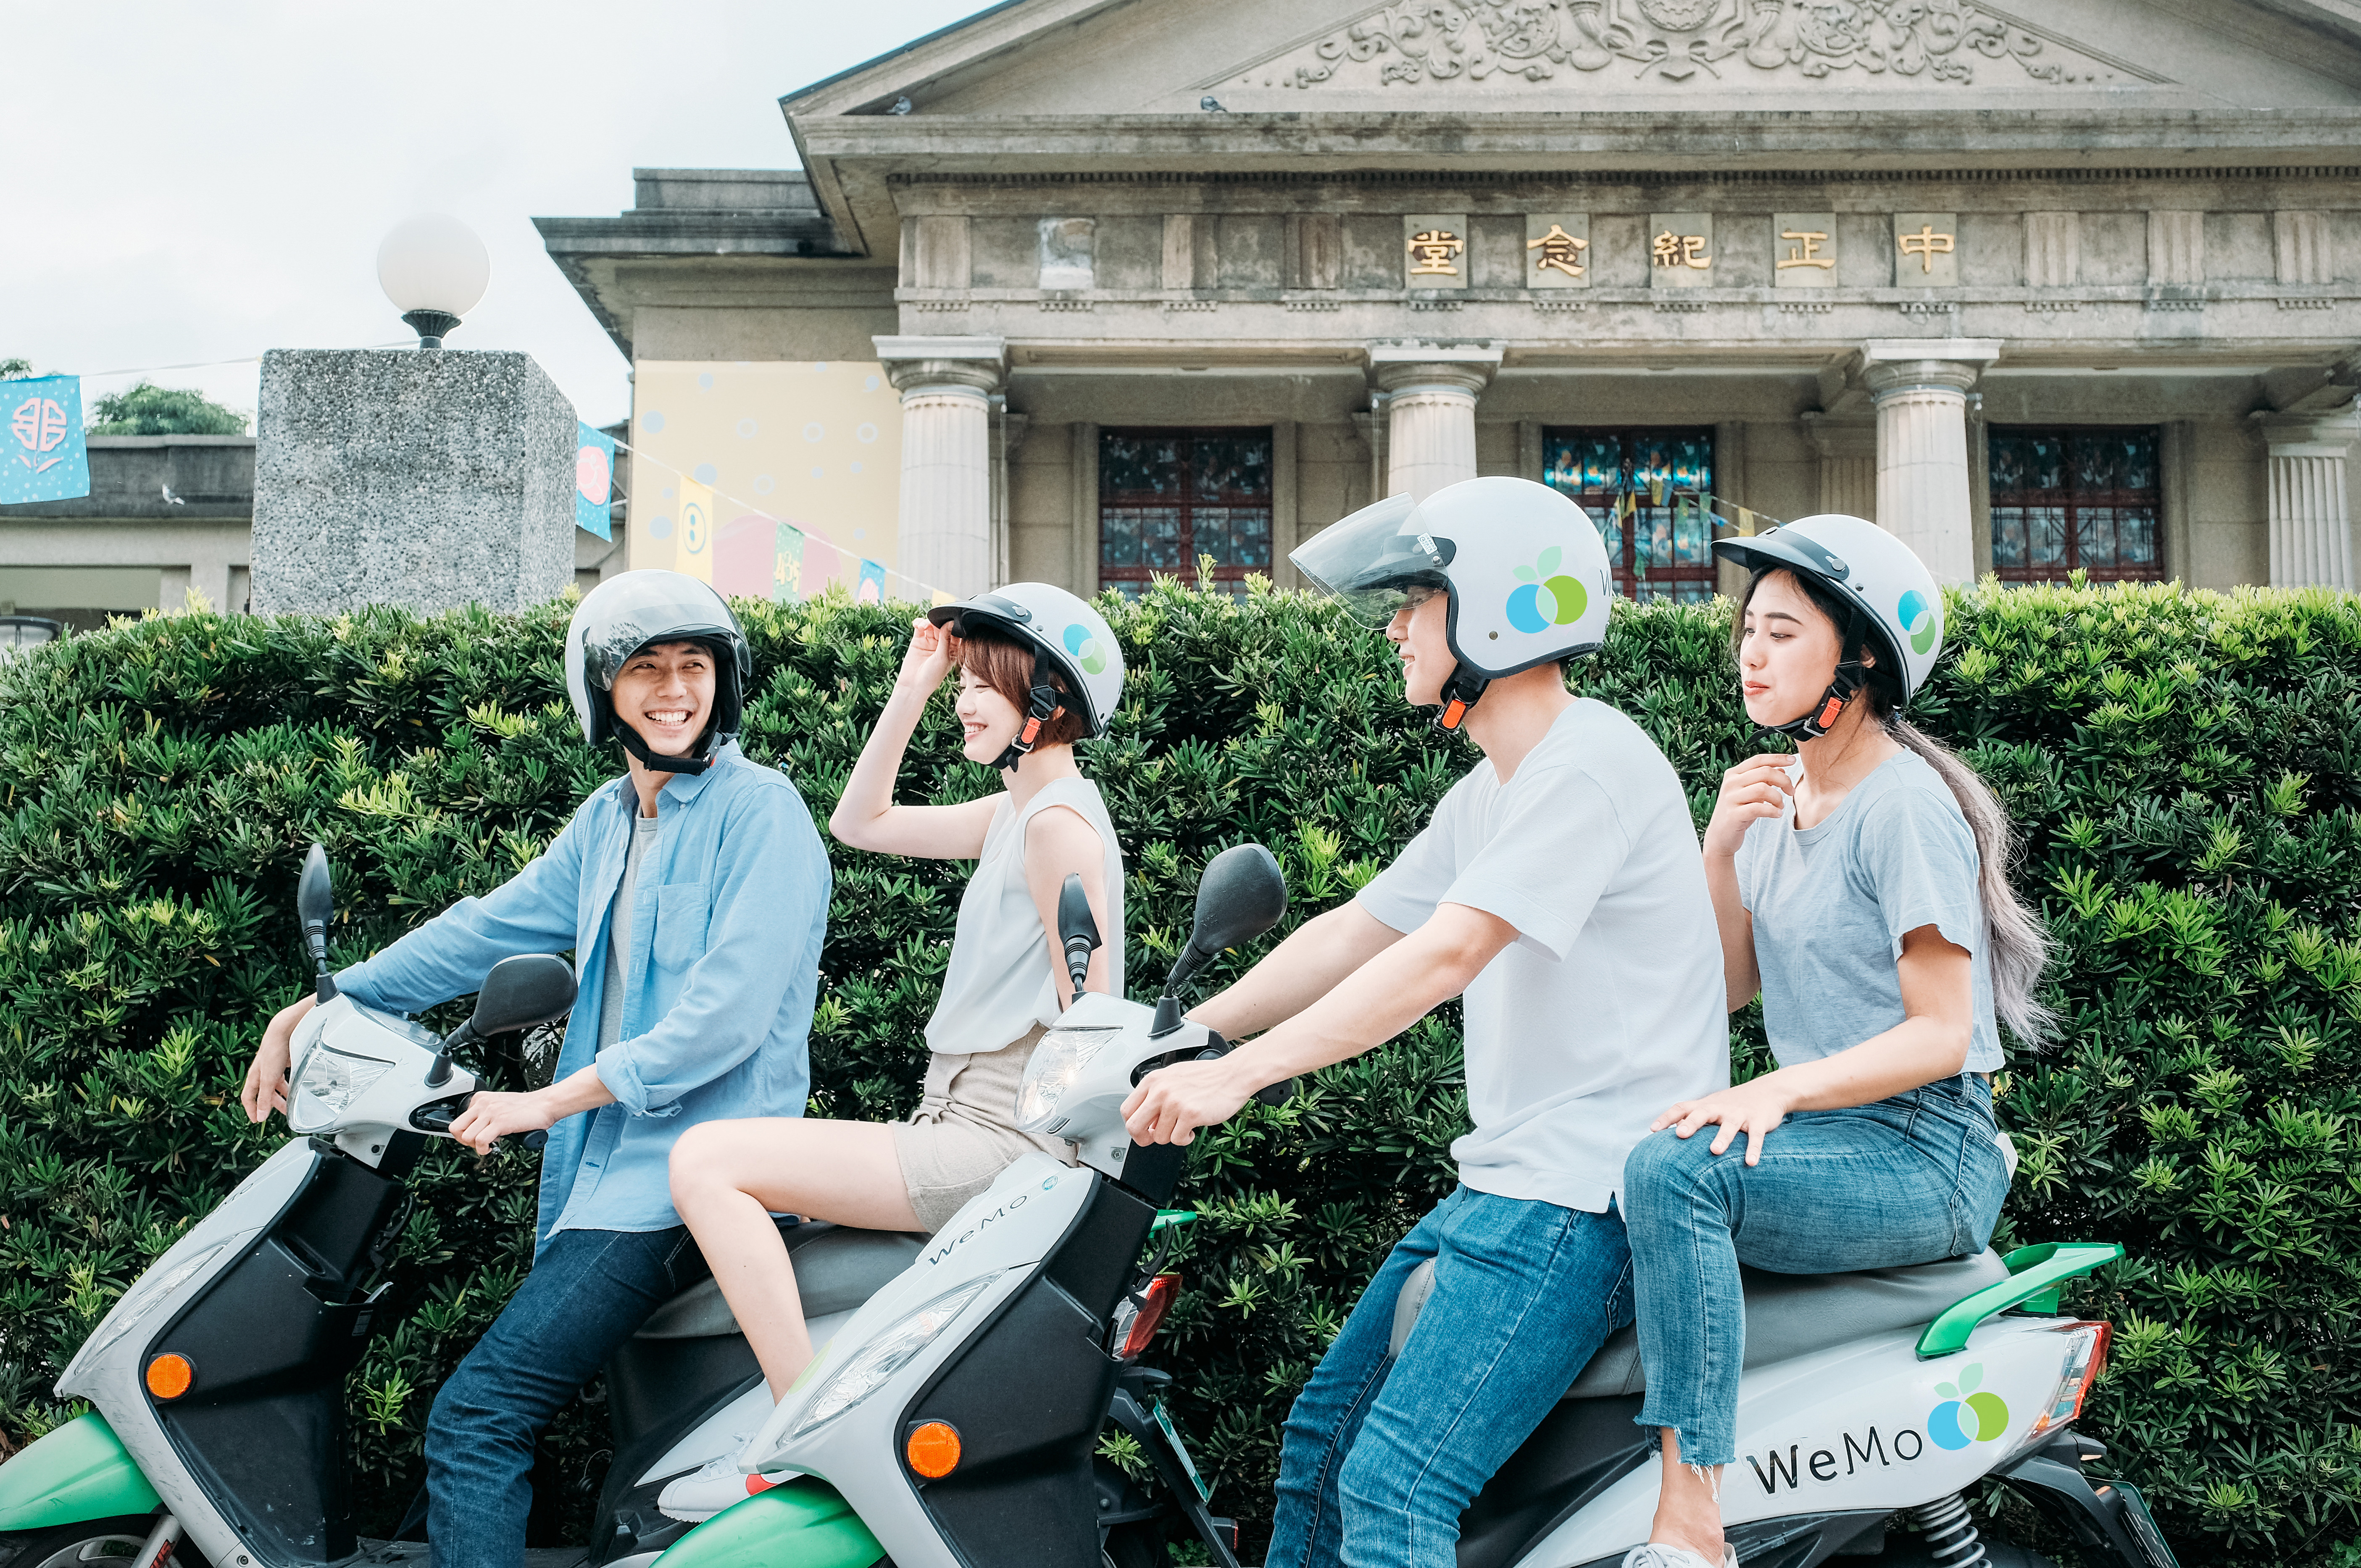 Banqiao District, WeMo Scooter, Xindian District, Car, Motorcycle, Electric motorcycles and scooters, , , World Car of the Year, WeMo Scooter 威摩科技, car, Green, Tourism, Vehicle, Helmet, Yellow, Bicycle, Personal protective equipment, Photography, Vacation, Scooter